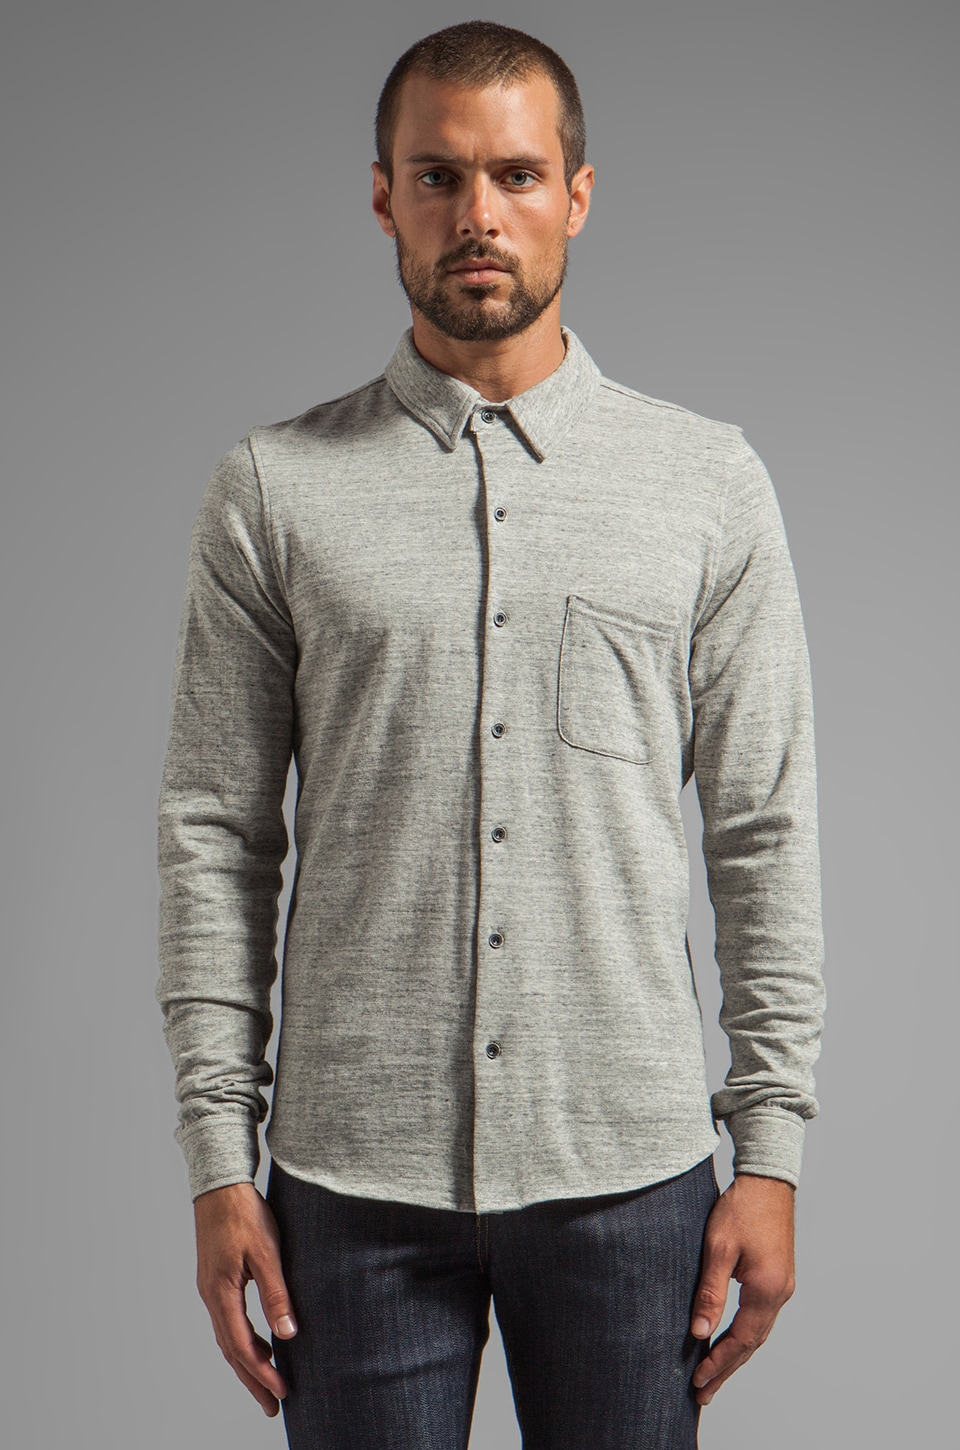 AG Adriano Goldschmied L/S Knit Button Down in Heather Grey